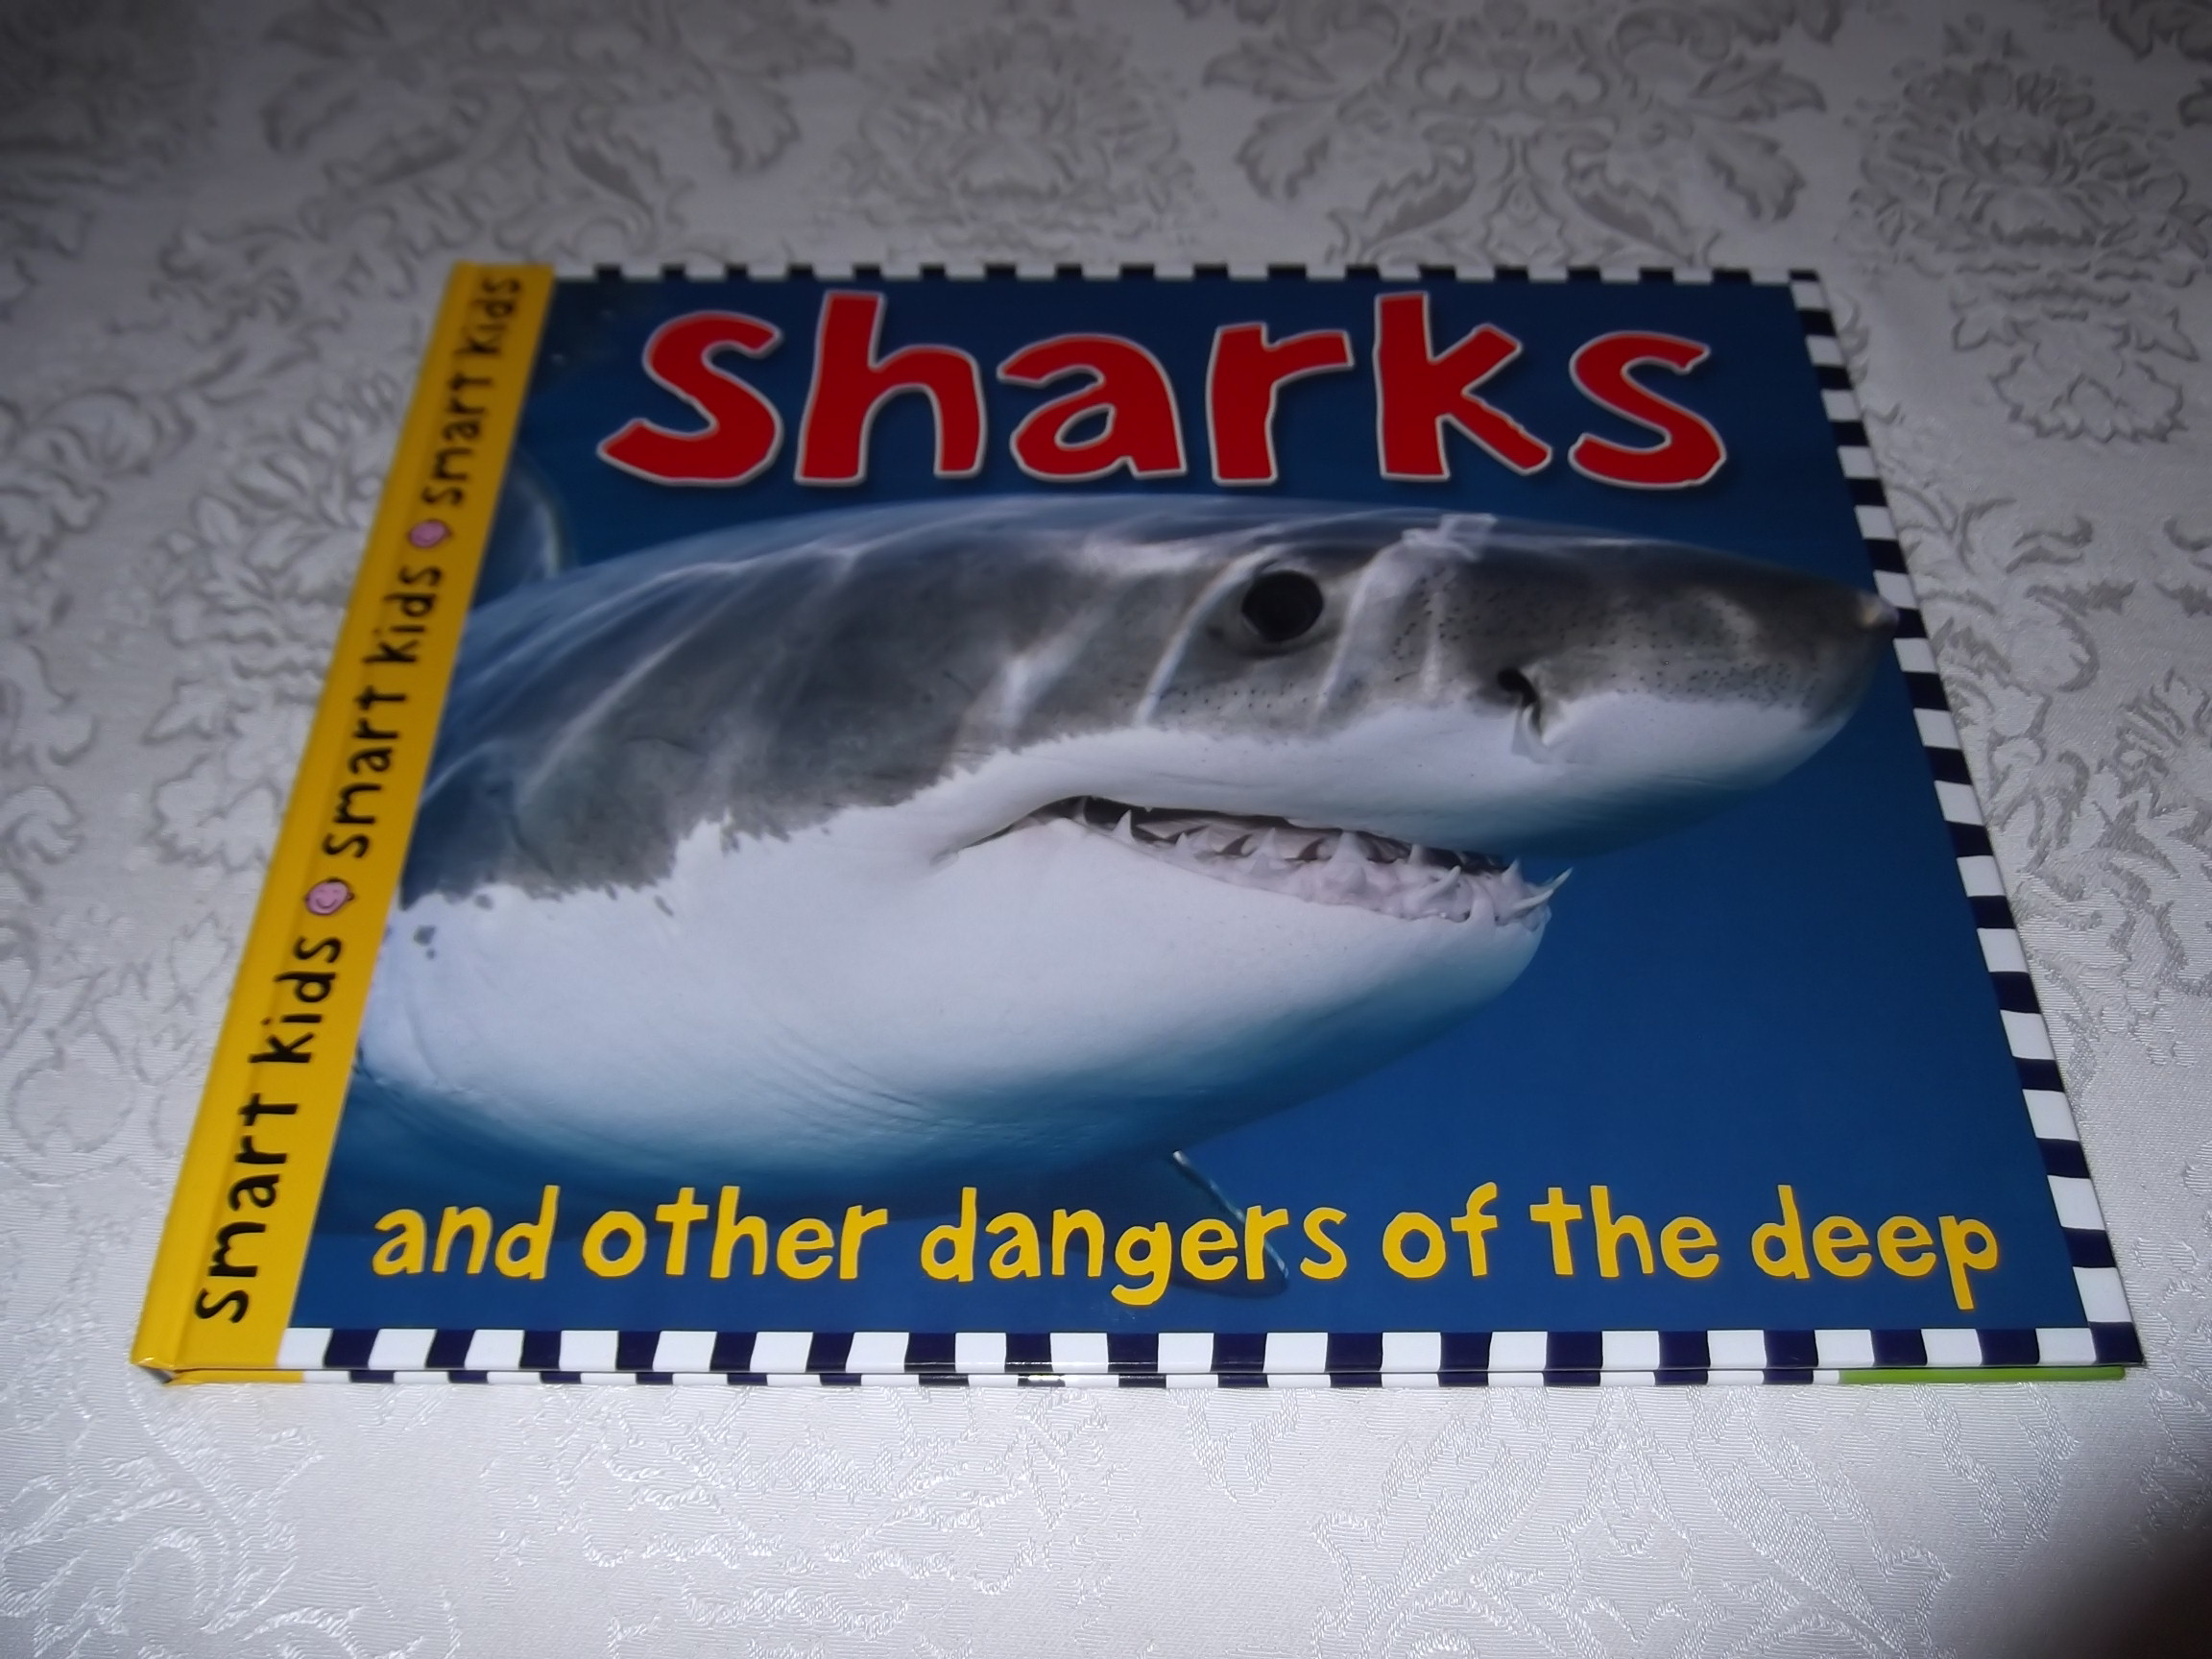 Sharks and Other Dangers of the Deep Simon Mugford Smart Kids Very Good HC